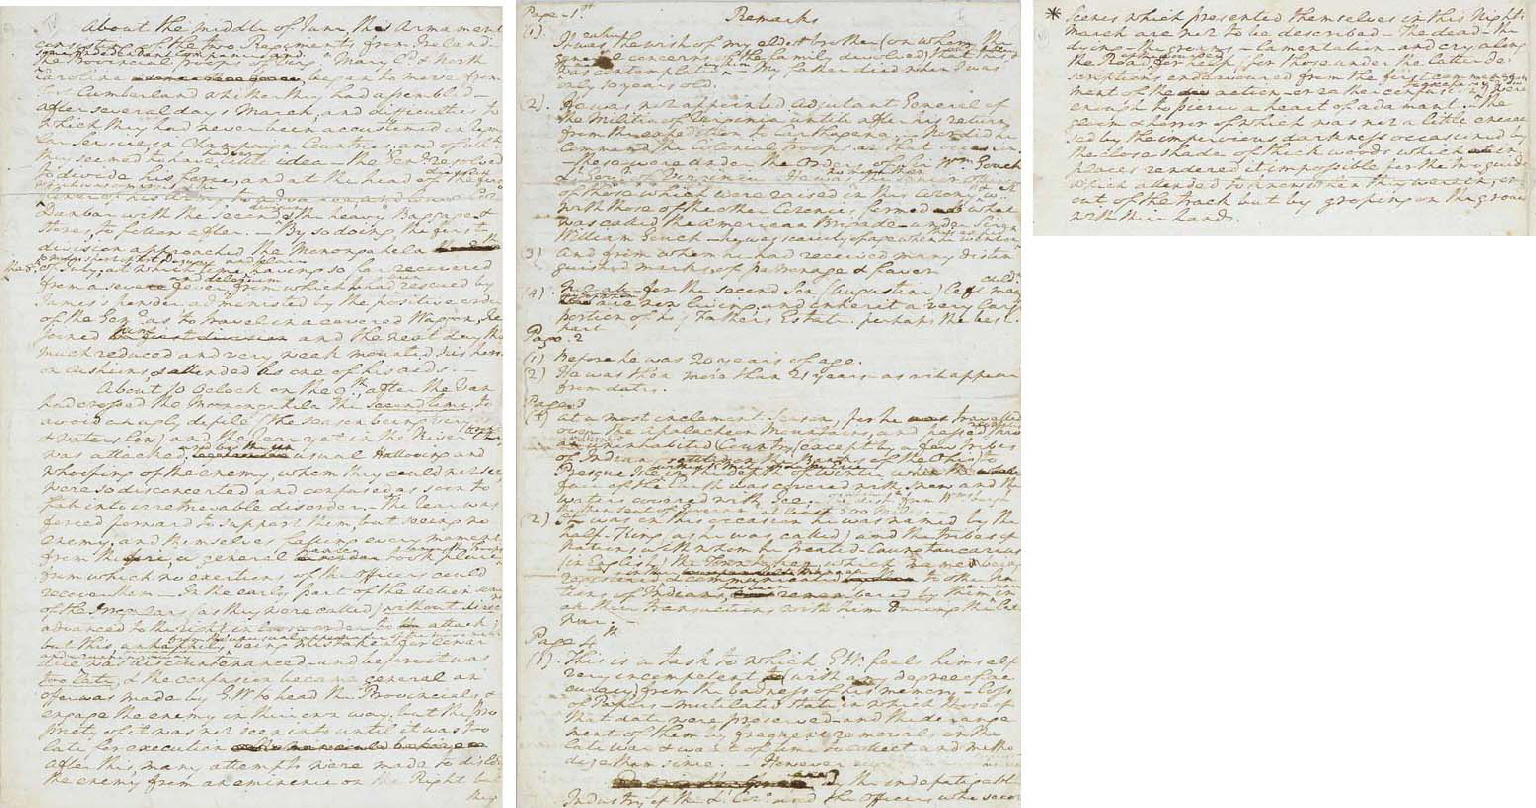 """WASHINGTON, George (1732-1799), President. Autograph manuscript account of his early military career, entitled """"Remarks,"""" prepared as additions to a draft biography by Colonel David Humphreys, [Mount Vernon], n.d. [1786-1789]. 11 pages, folio, 322 x 200mm. (10 11/16 x 7 7/8in.). written on rectos and versos of three bifolios of laid paper watermarked """"L I C,"""" pages 2, 3, 6, 7 and 9 professionally reinforced with tissue to protect weakened folds, with an early cover sheet of a different paper (also reinforced) bearing note of an 1829 owner (see Provenance); enclosed in red morocco gilt folder, silk linings, quarter red morocco gilt folding box."""